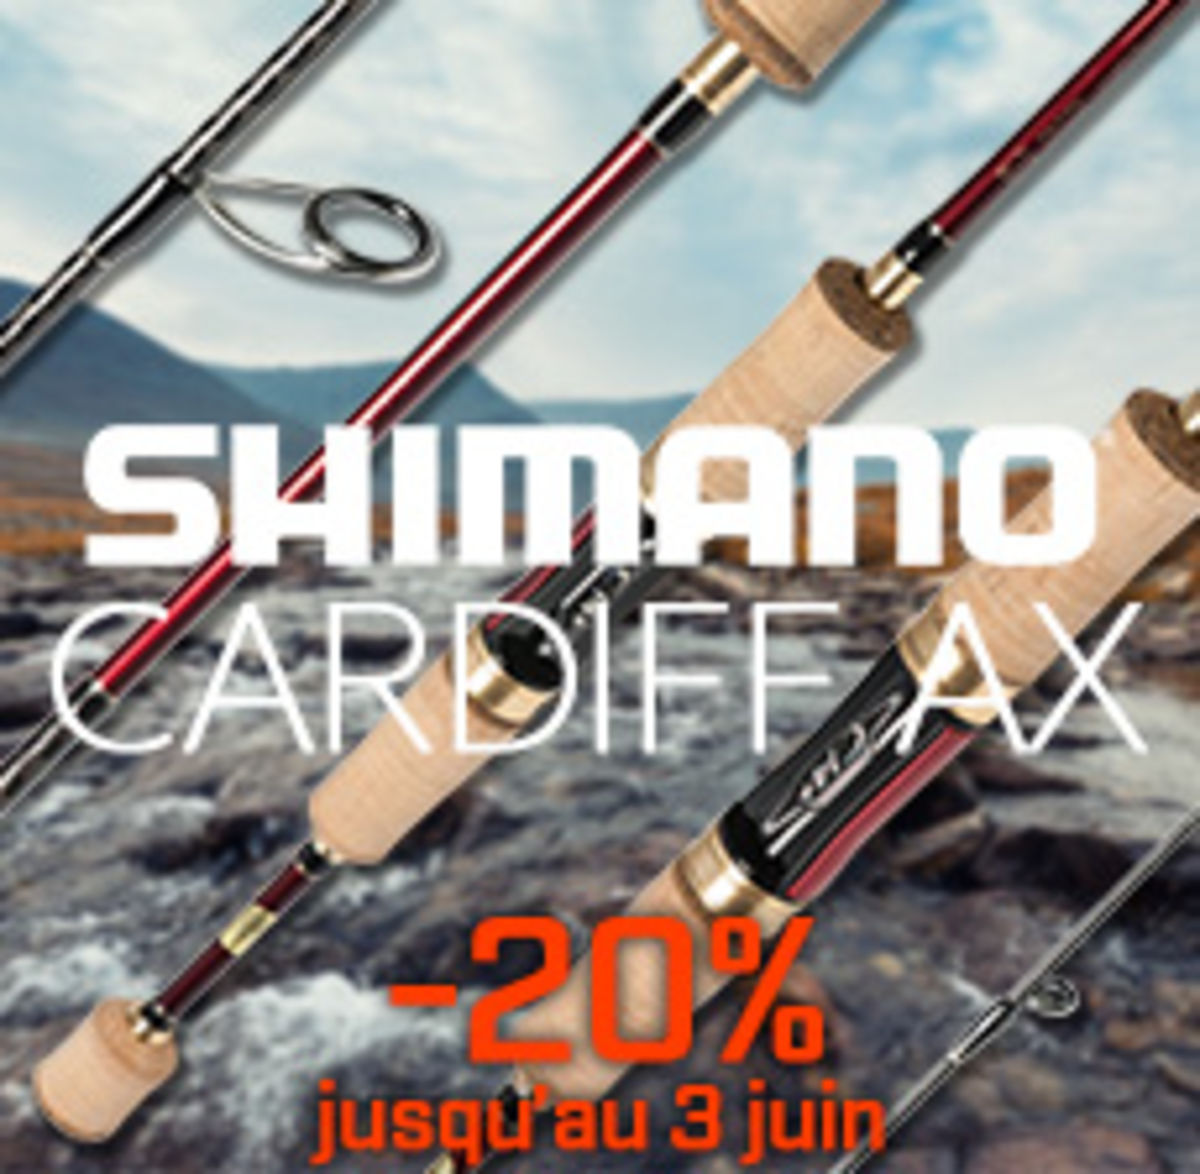 voir Shimano Cardiff AX